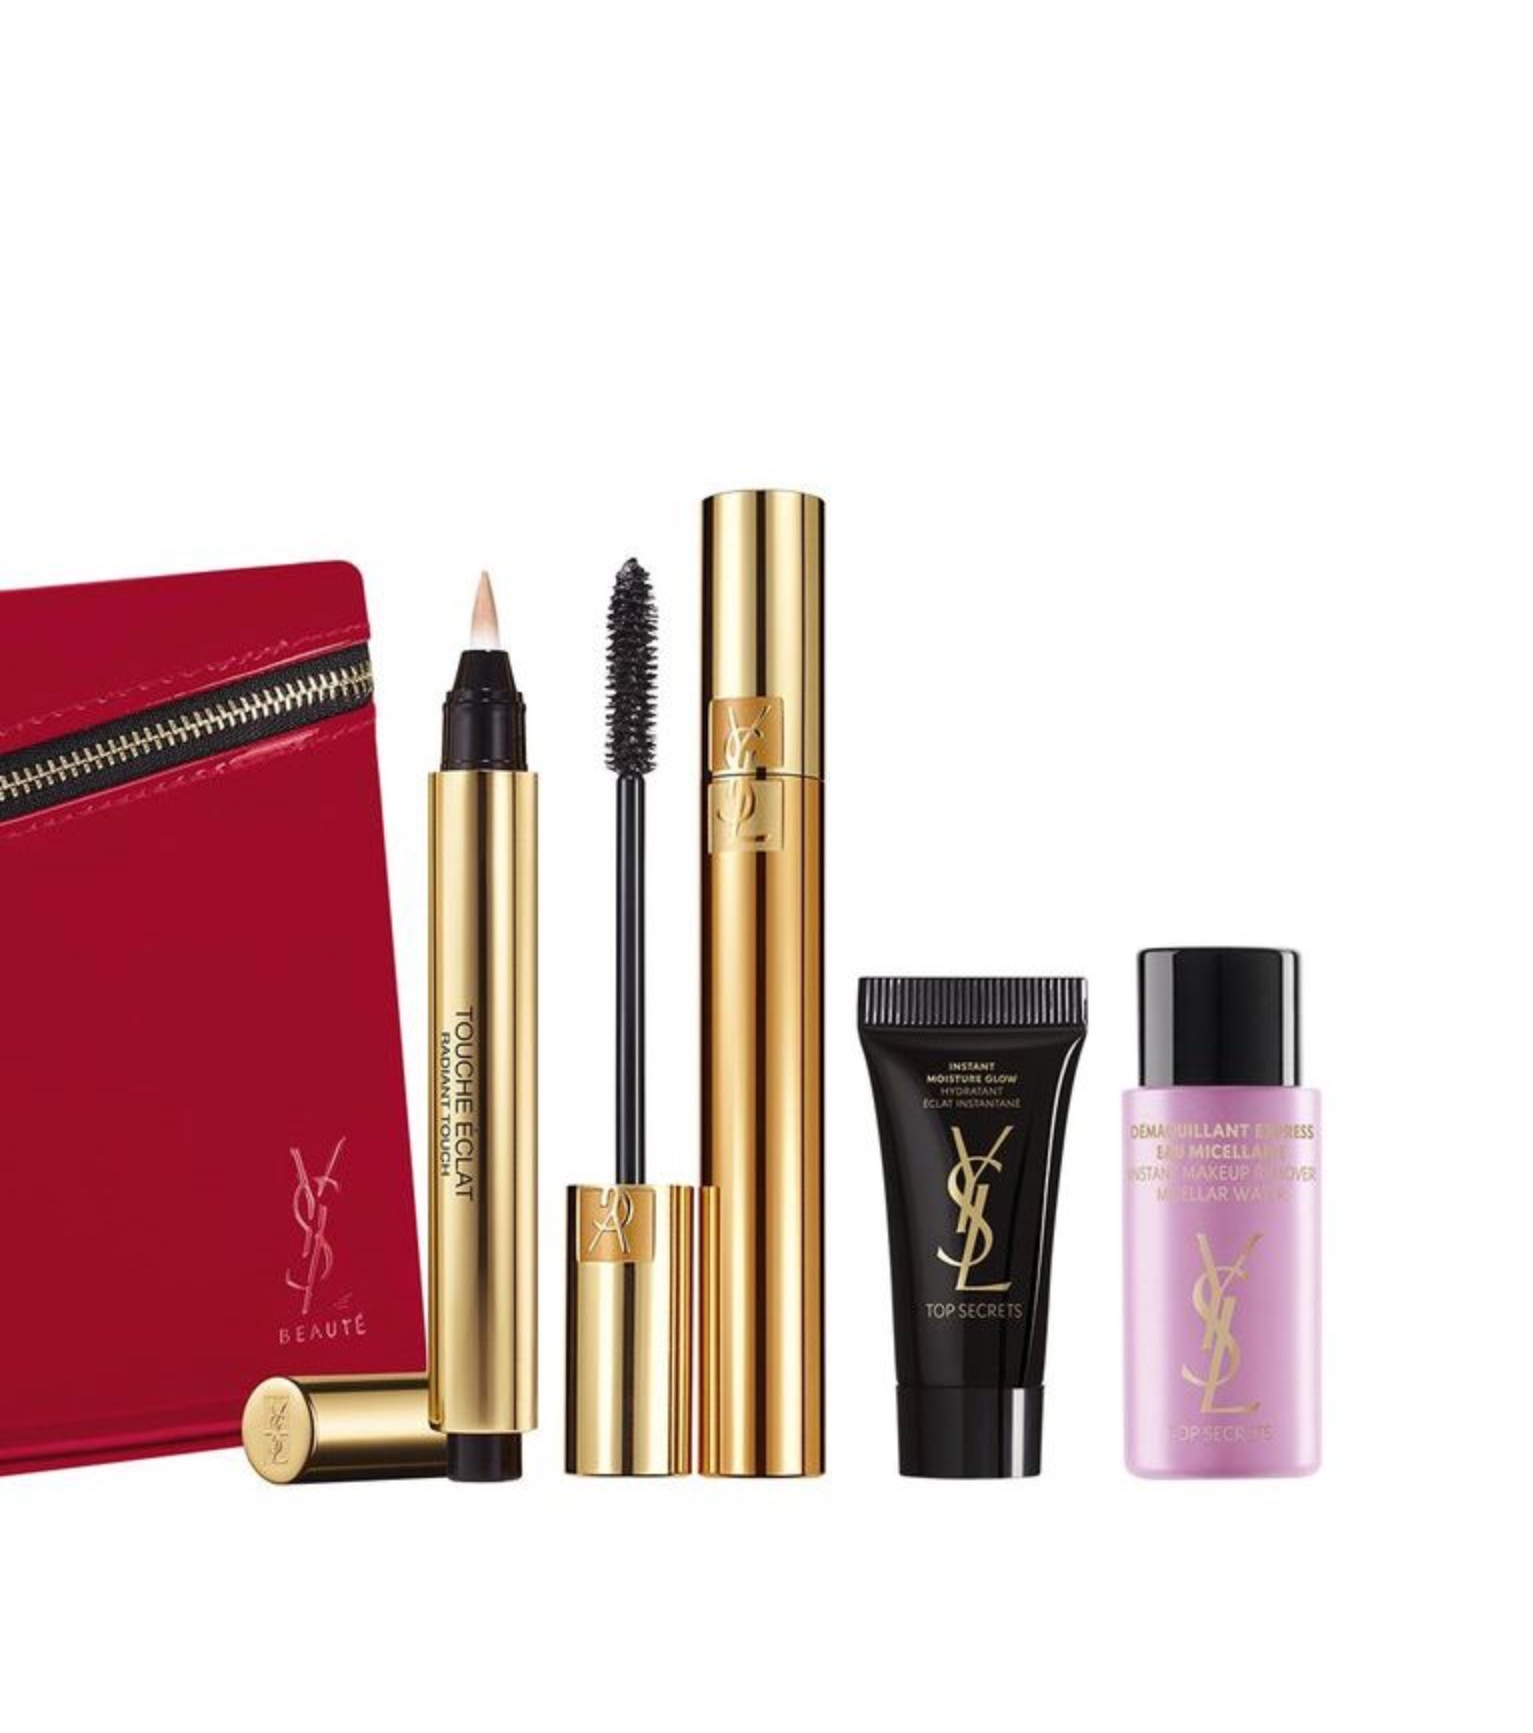 YSL X'mas限定★サンローラン★Touche Eclet ギフトセット